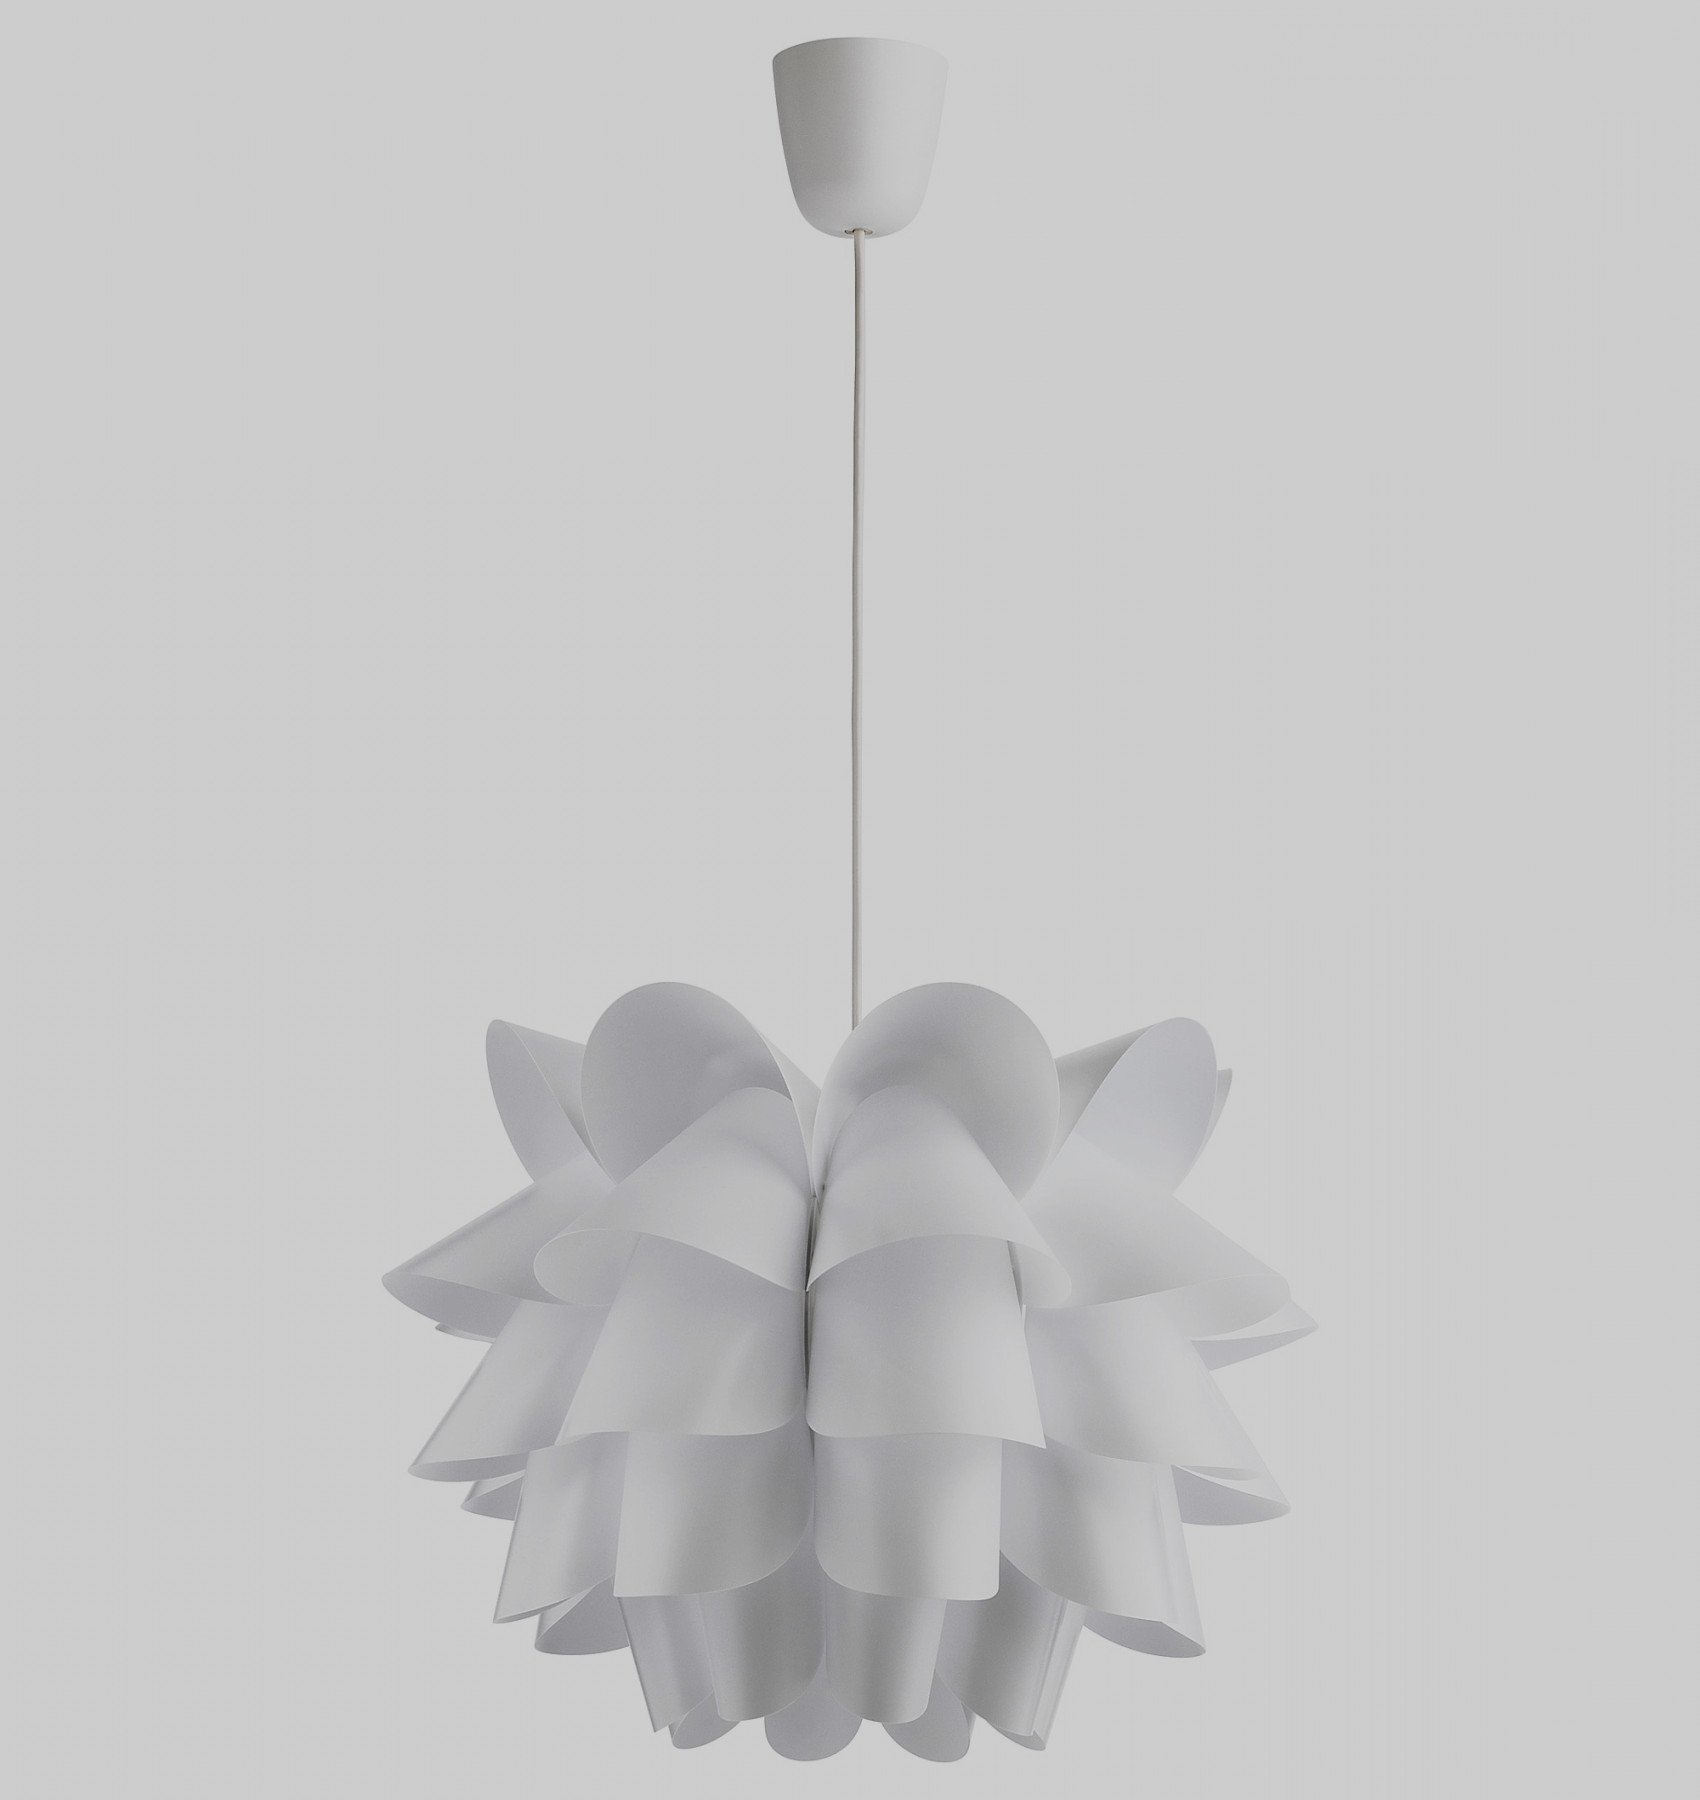 Brushed Nickel Vase Of 26 Fresh Chandelier Light Ikea Fresh Home Design Ideas Regarding Chandelier Light Ikea Ikea Knappa Pendant Lamp Gives A soft Mood Light